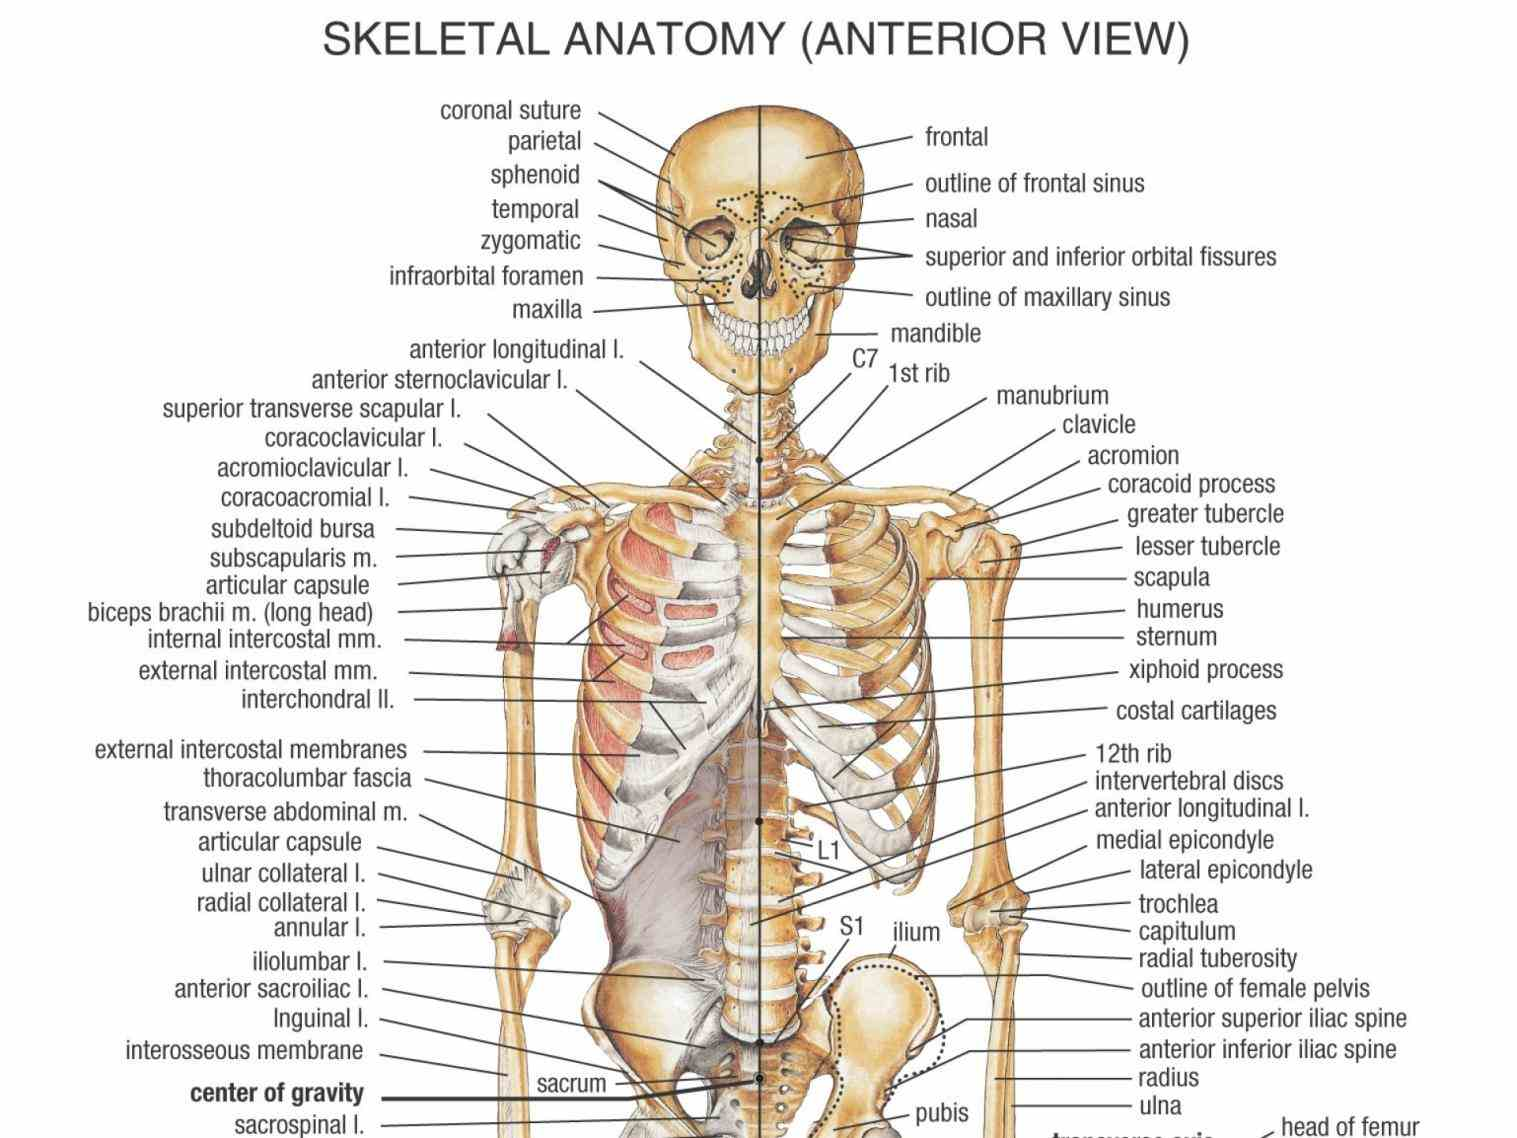 Skeleton jul the structural peculiarities of human skeleton give beings basic anatomy bones and joints see the  de Anatomy